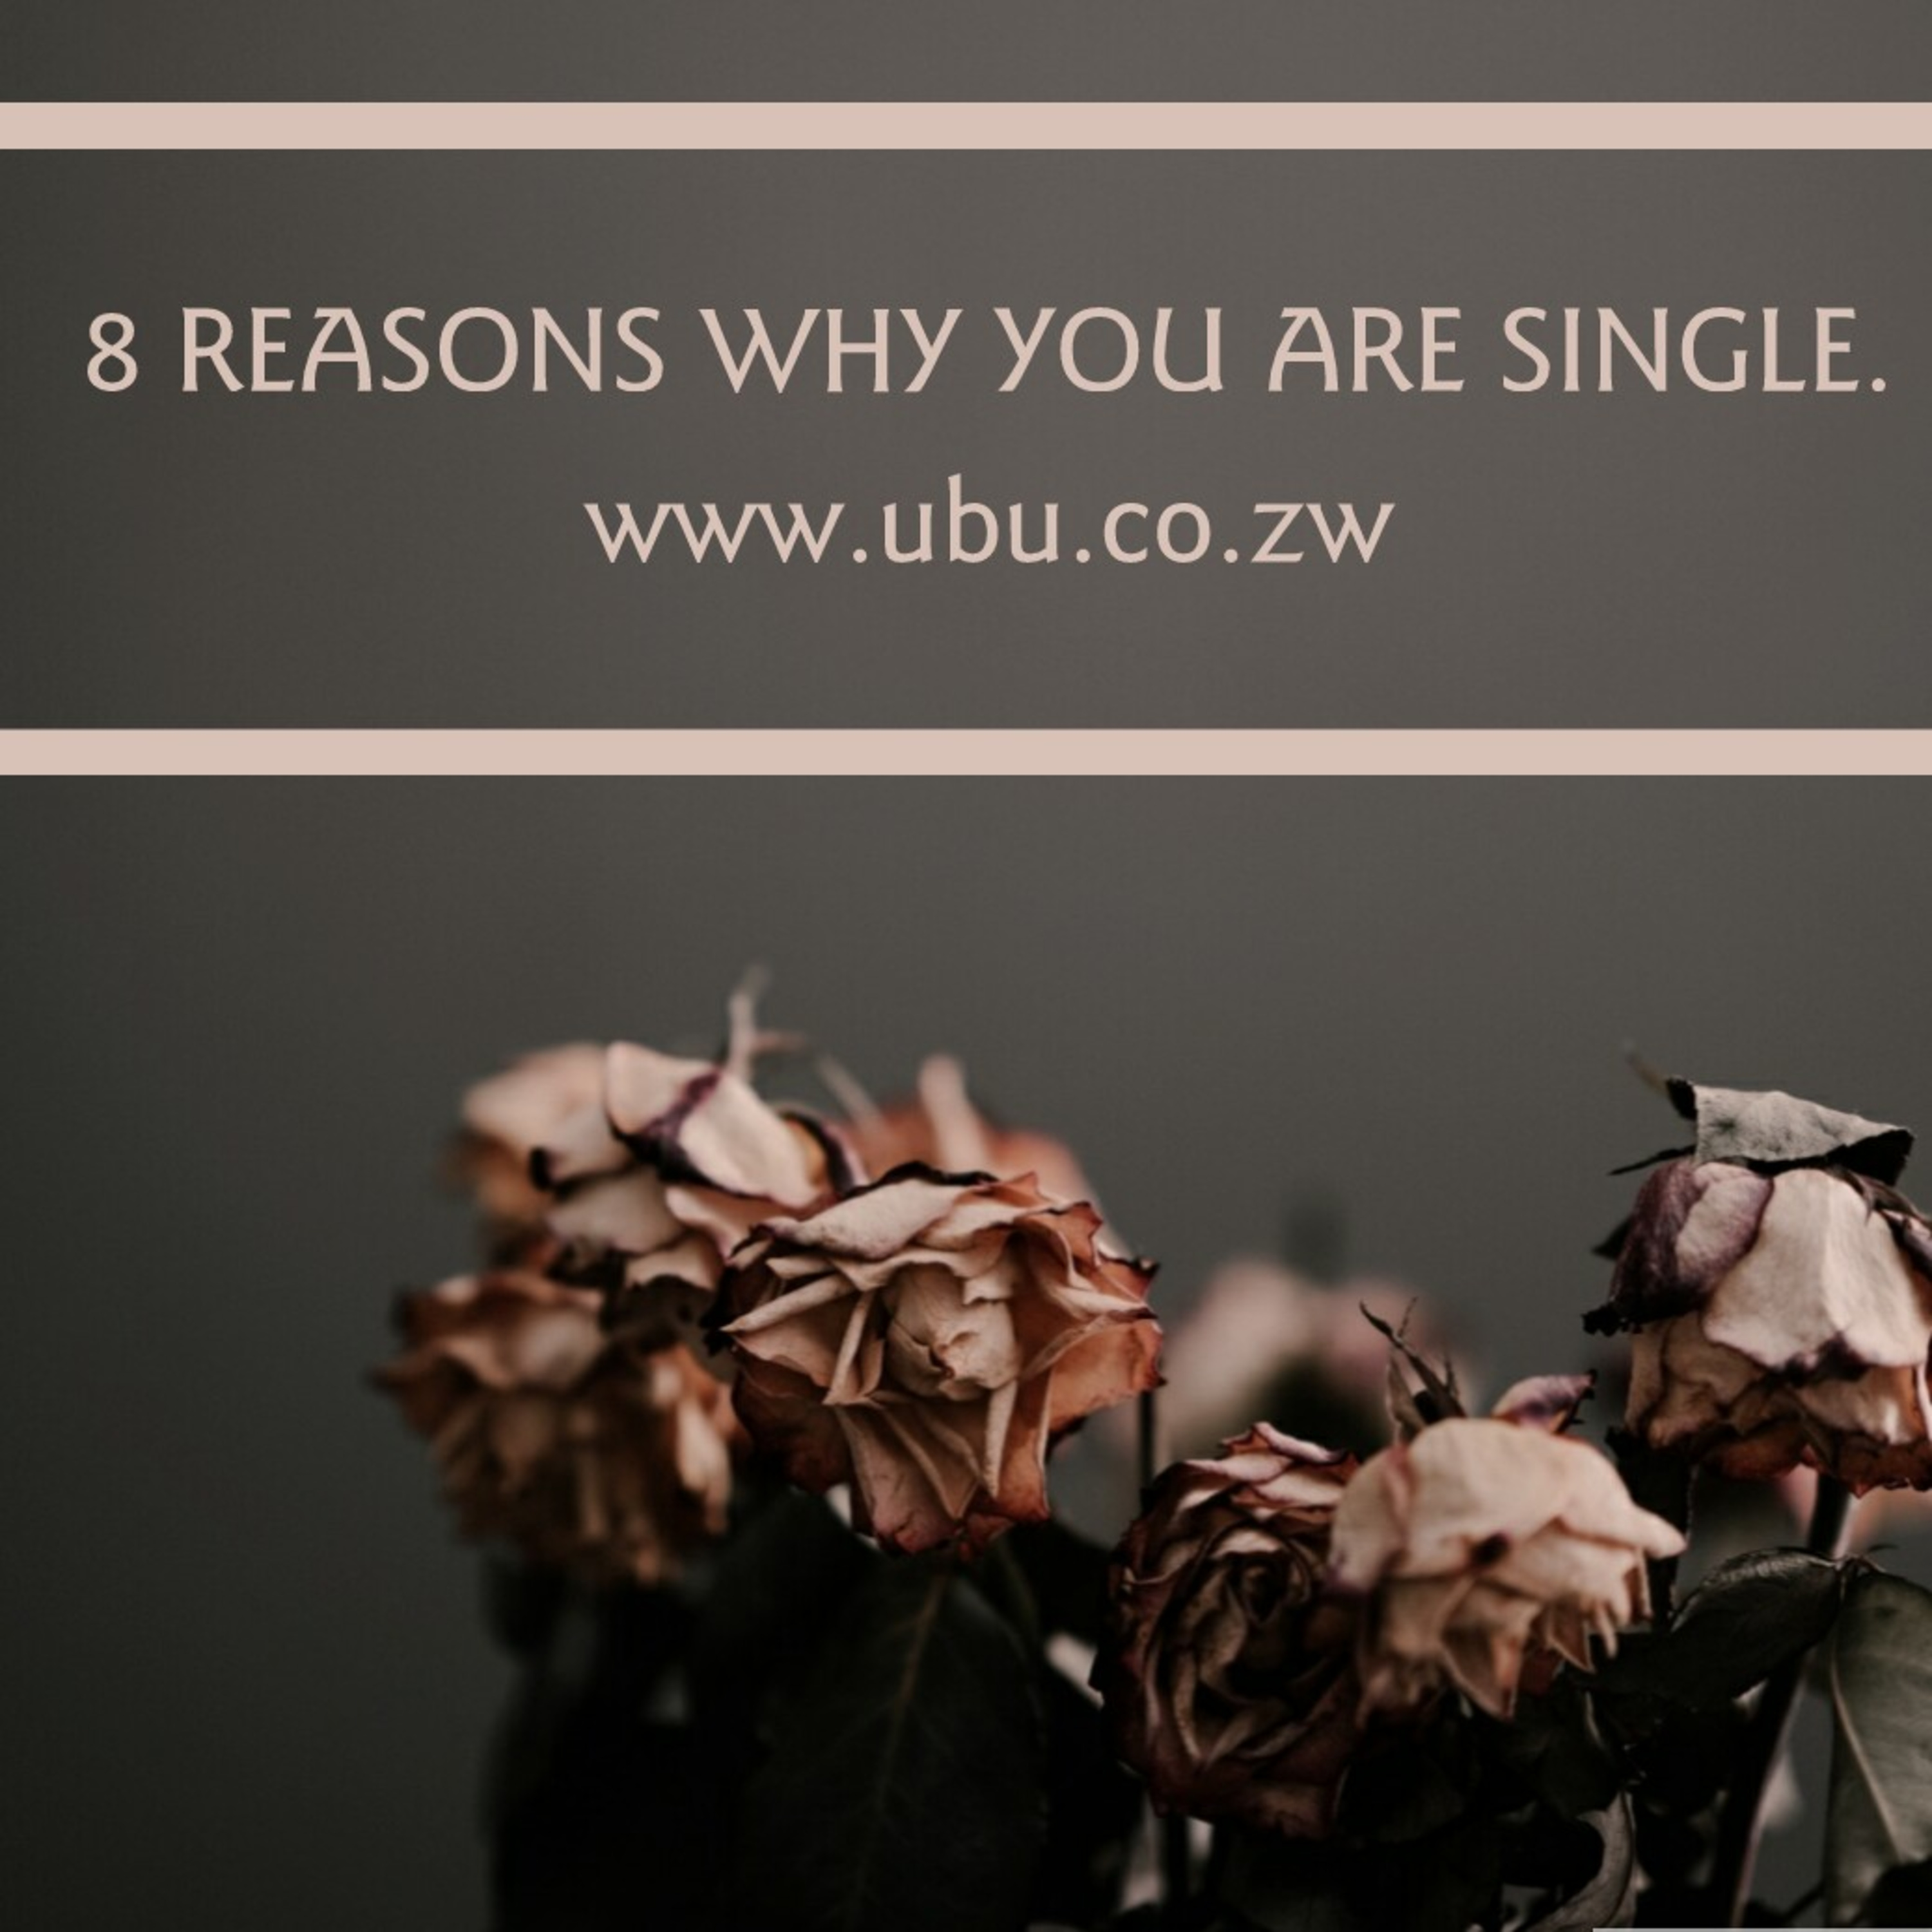 8 REASONS WHY YOU ARE SINGLE